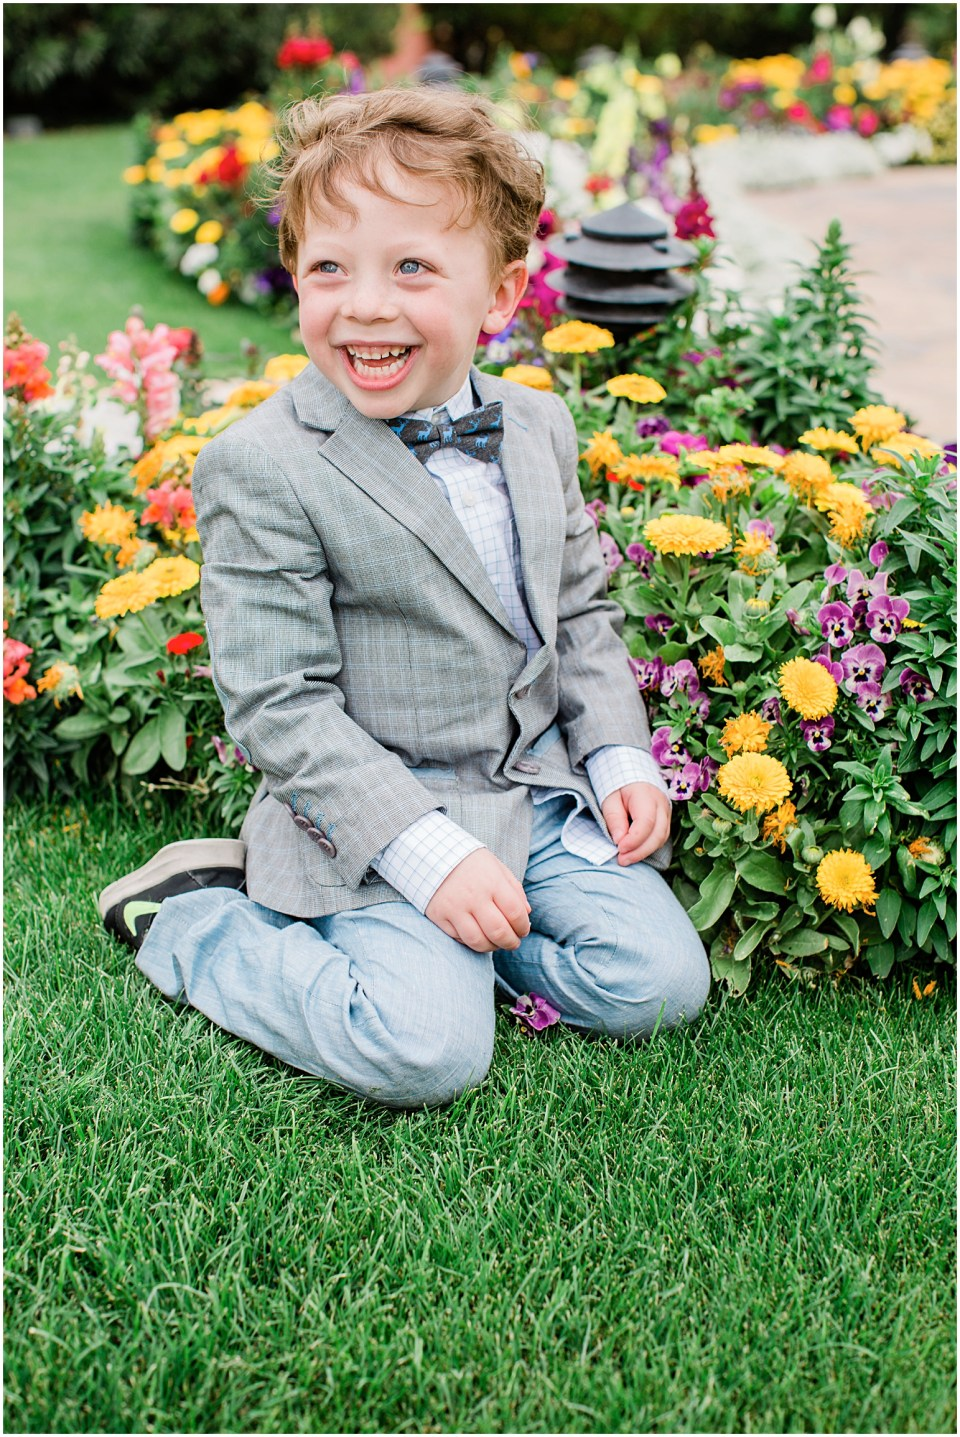 Ring bearer portrait at Historical Arizona Inn, Tucson, Arizona